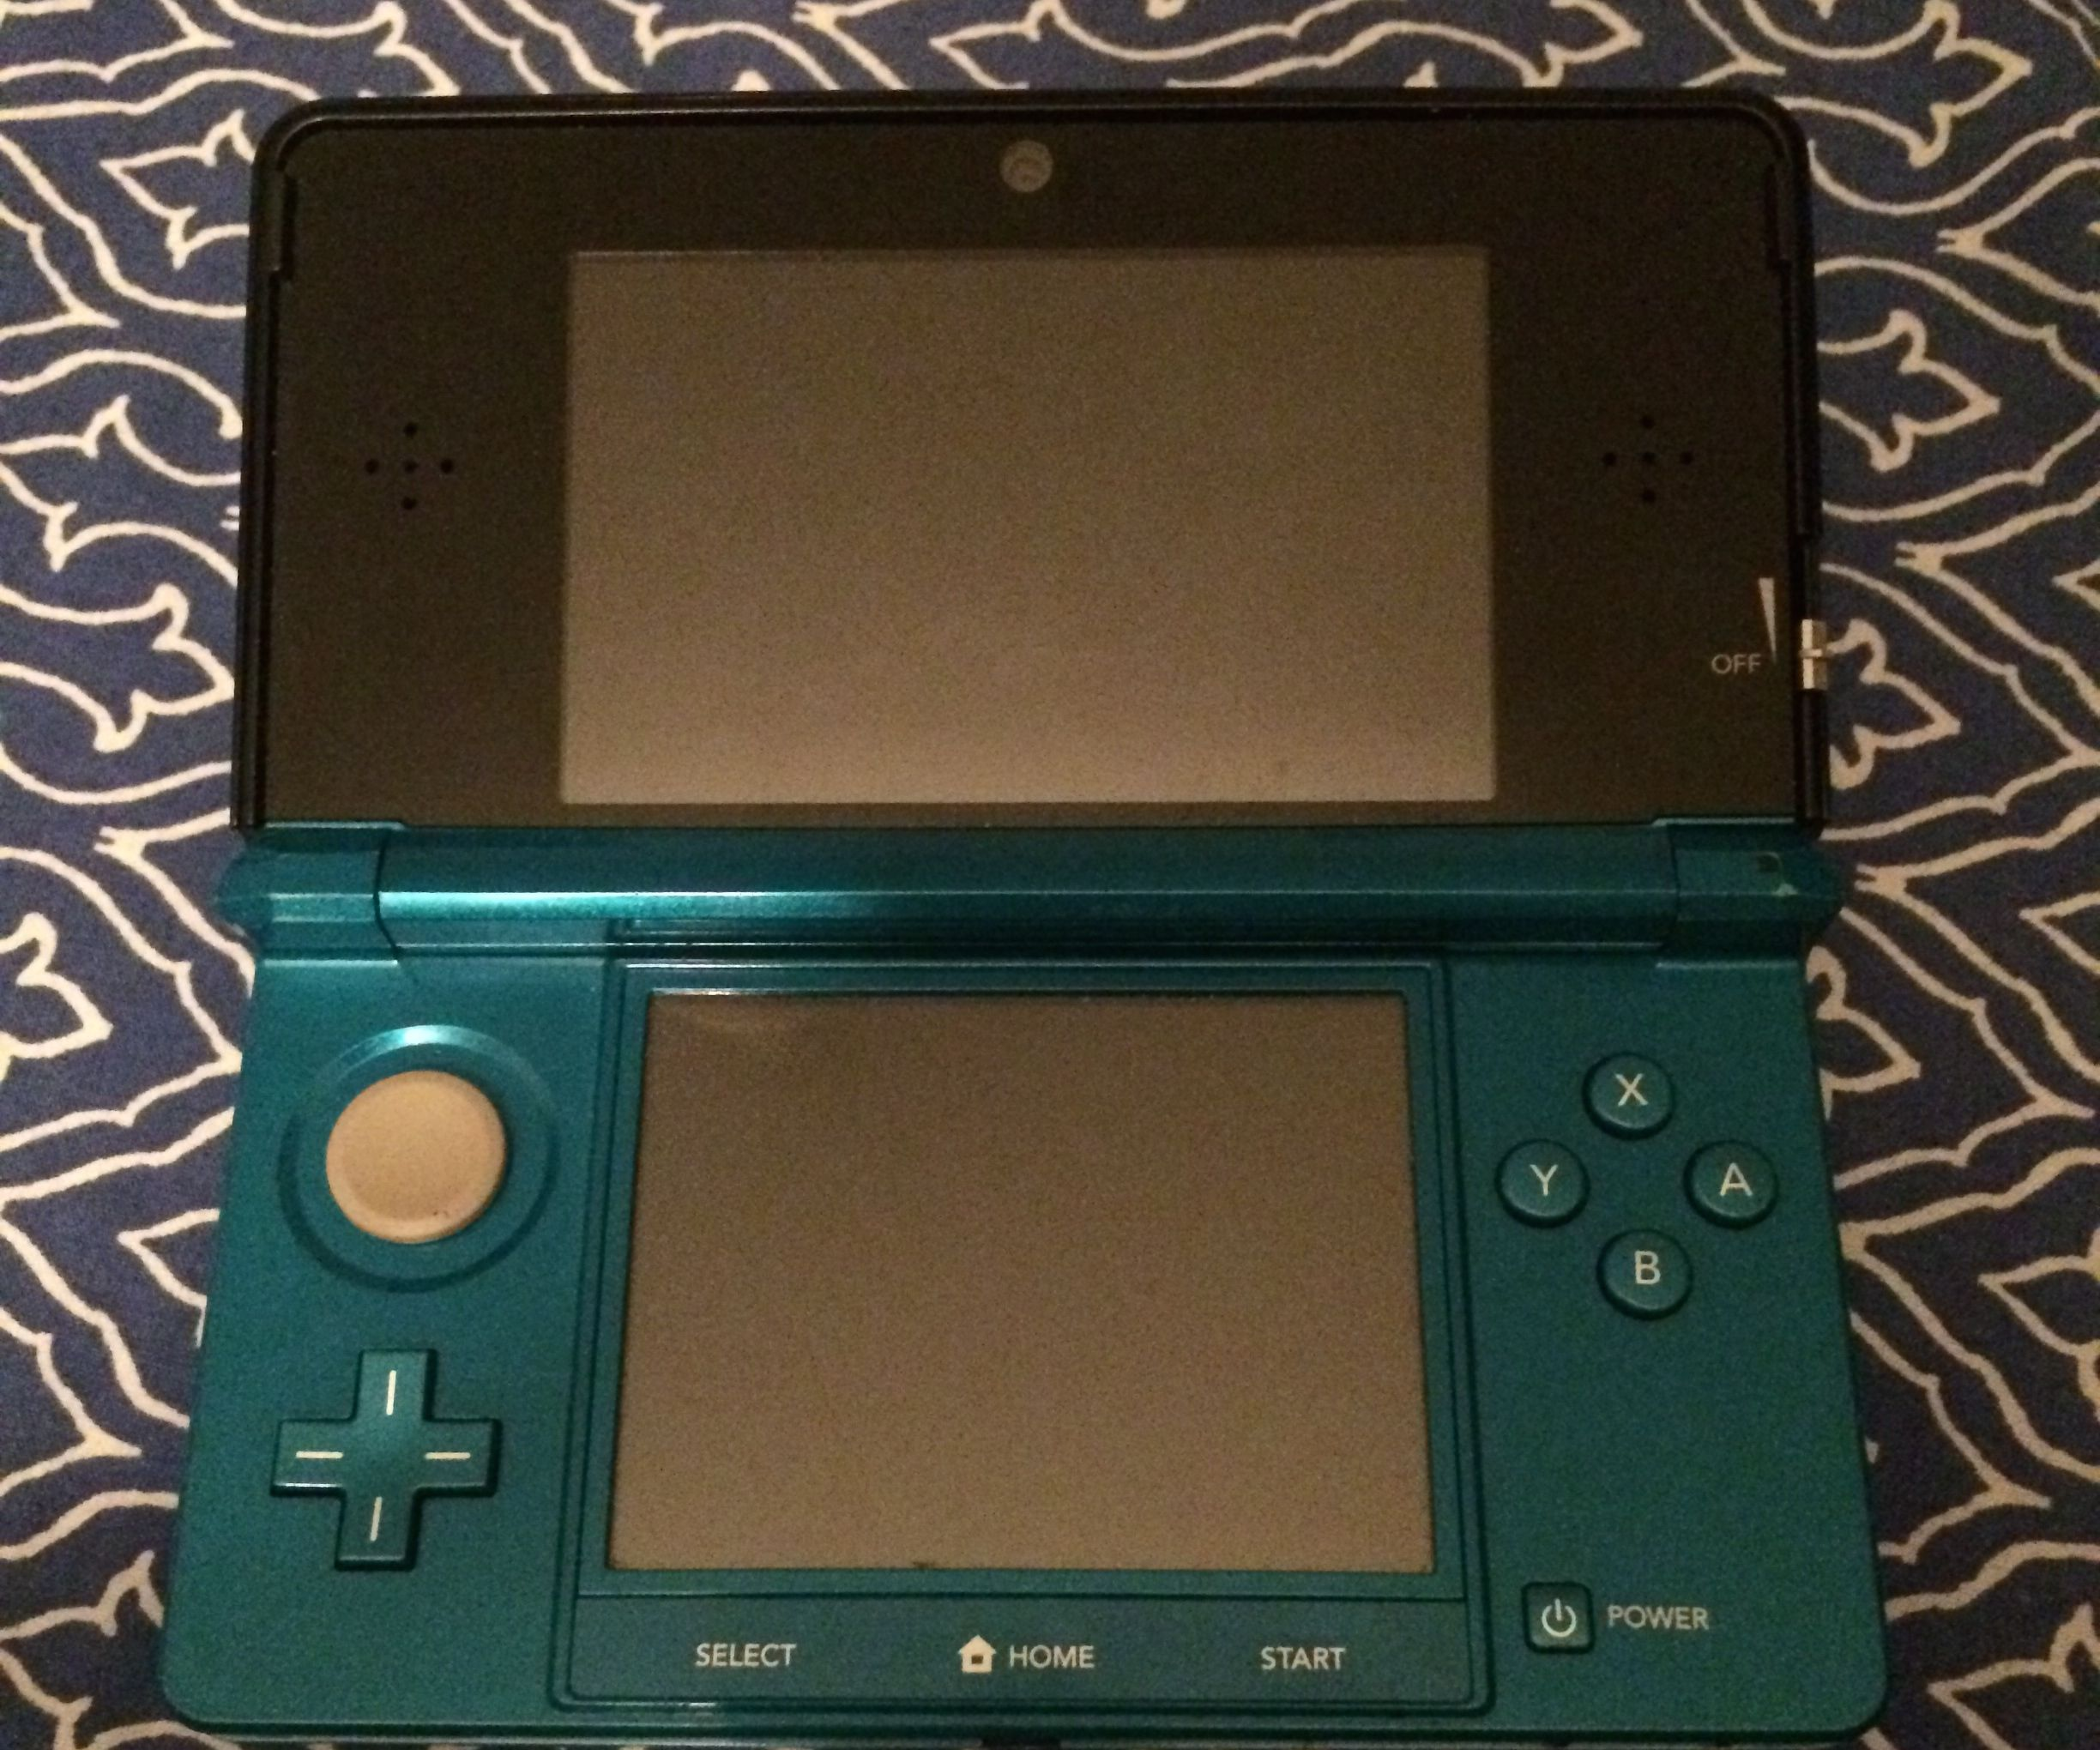 How To Get An Unlimited Amount Of DS Games For Your 3DS